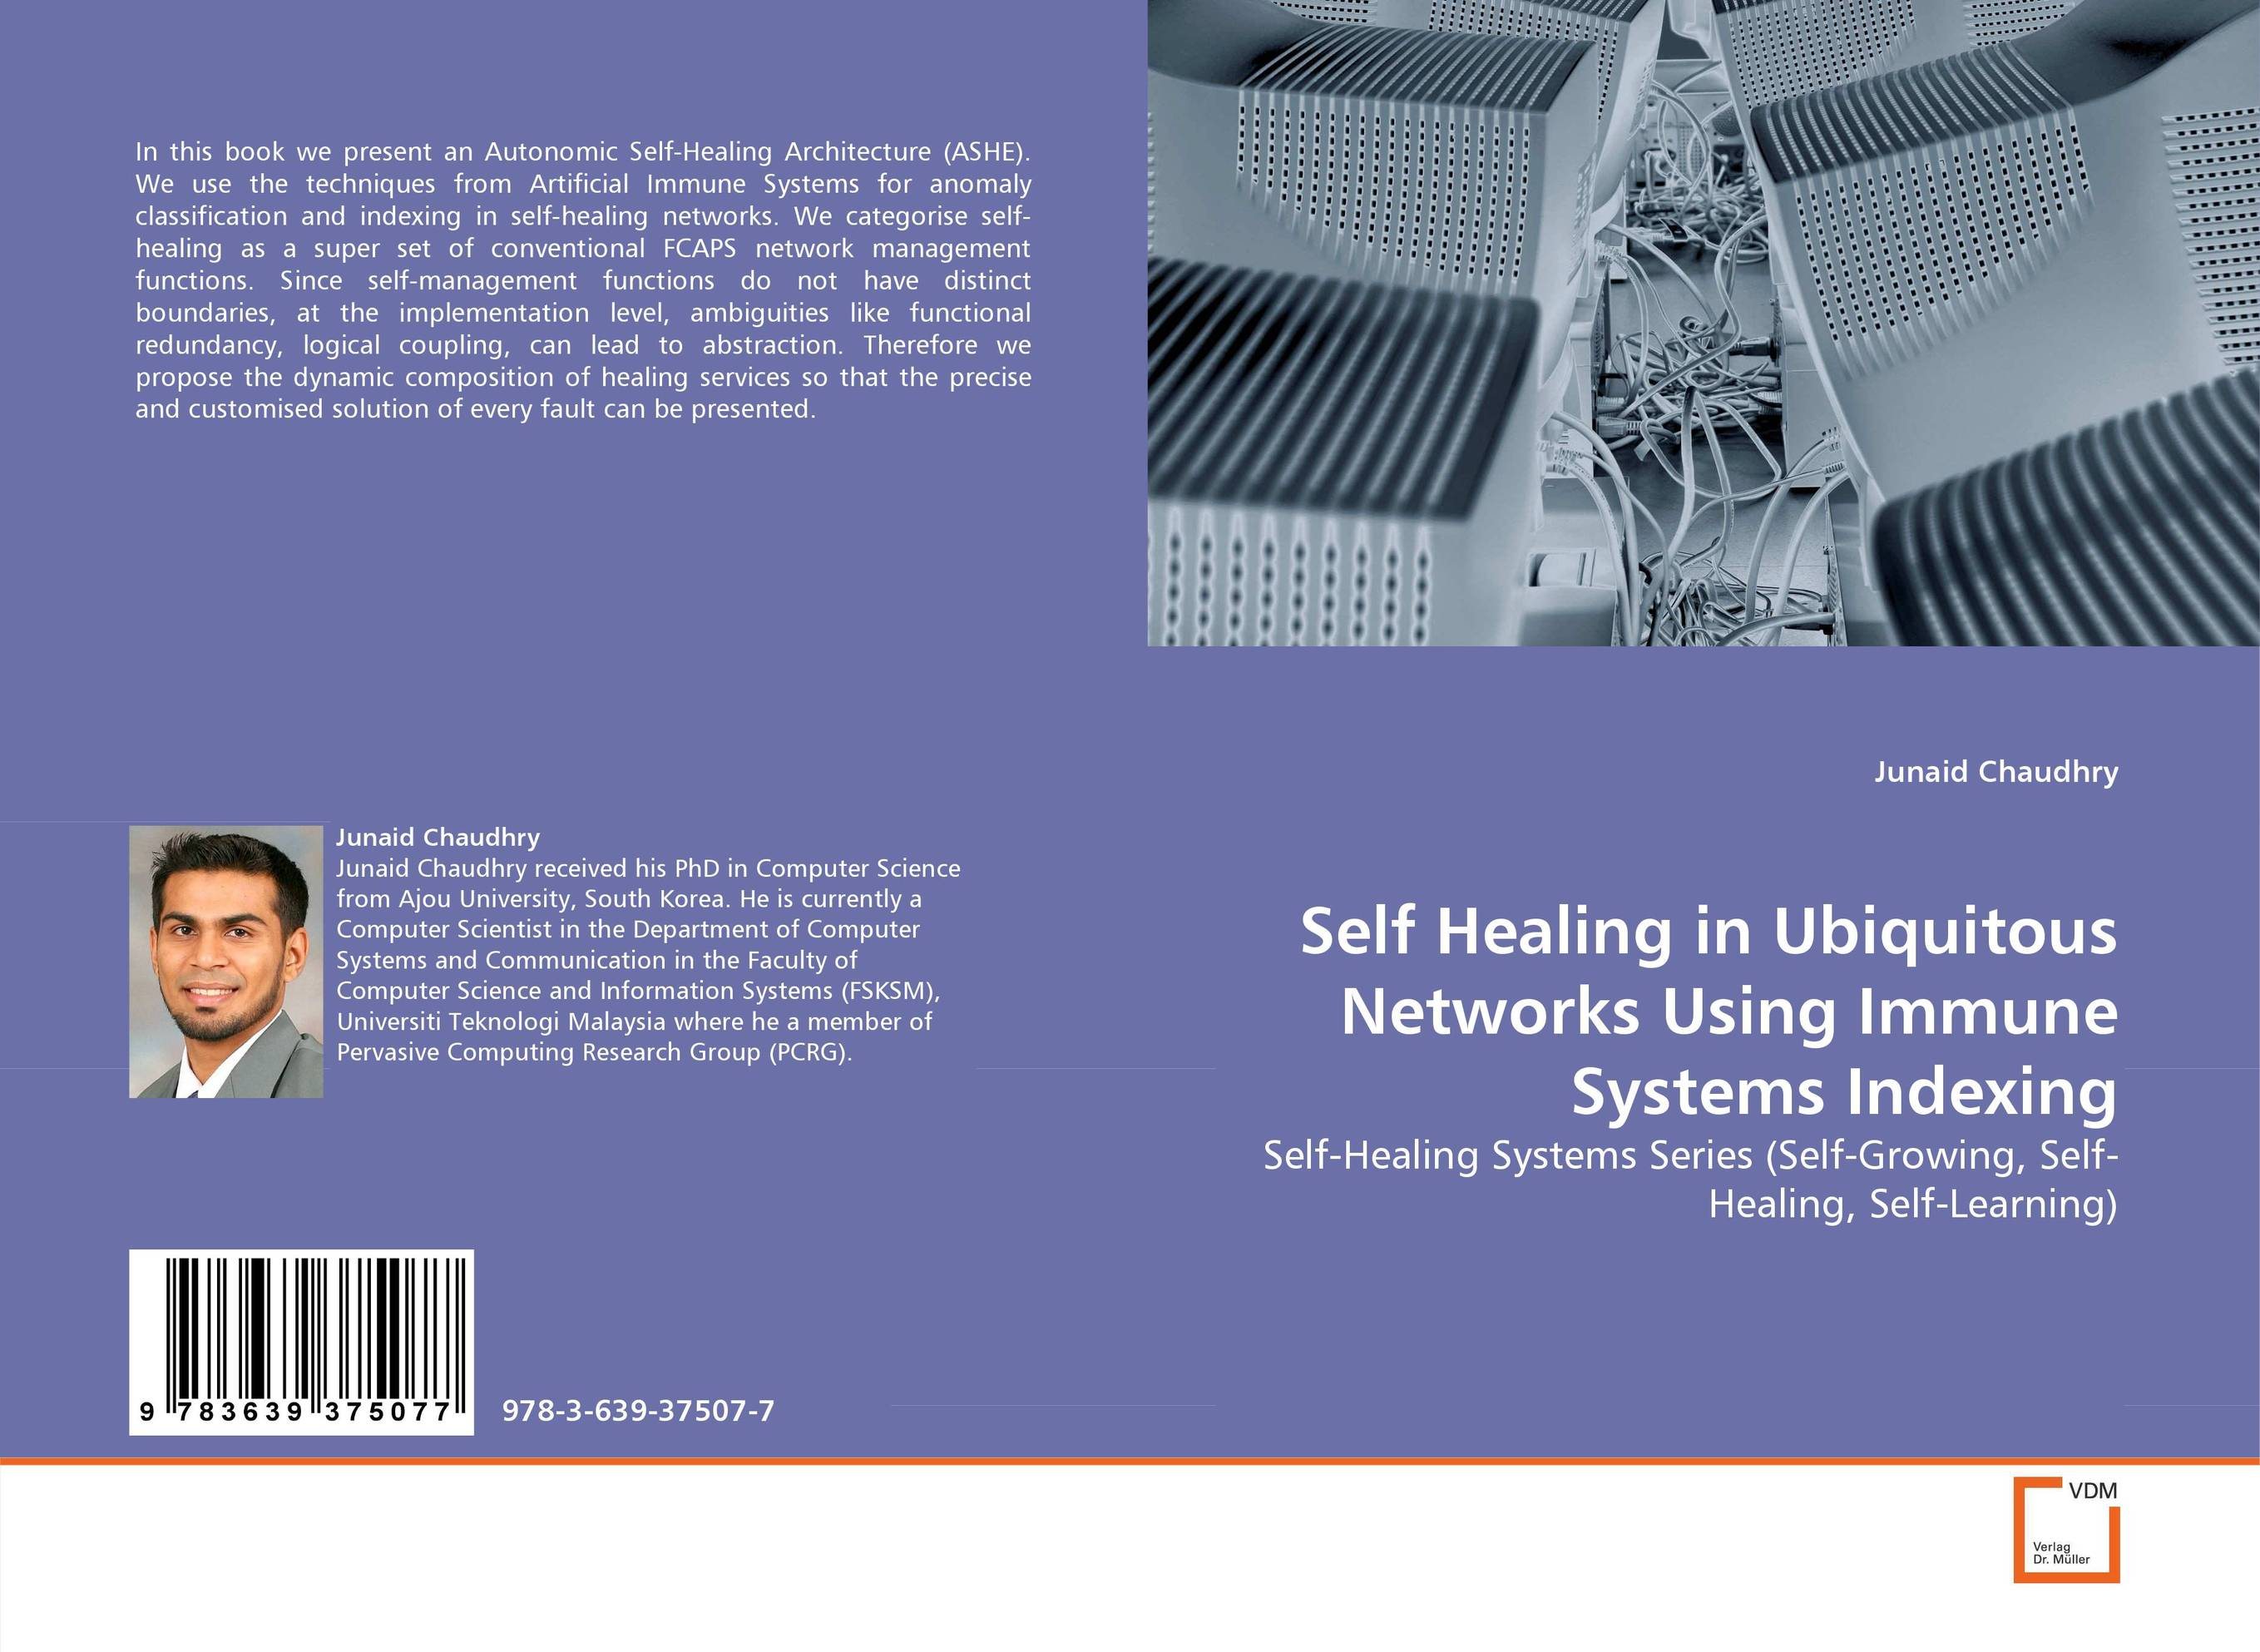 Self Healing in Ubiquitous Networks Using Immune Systems Indexing an assessment of indexing and abstracting services